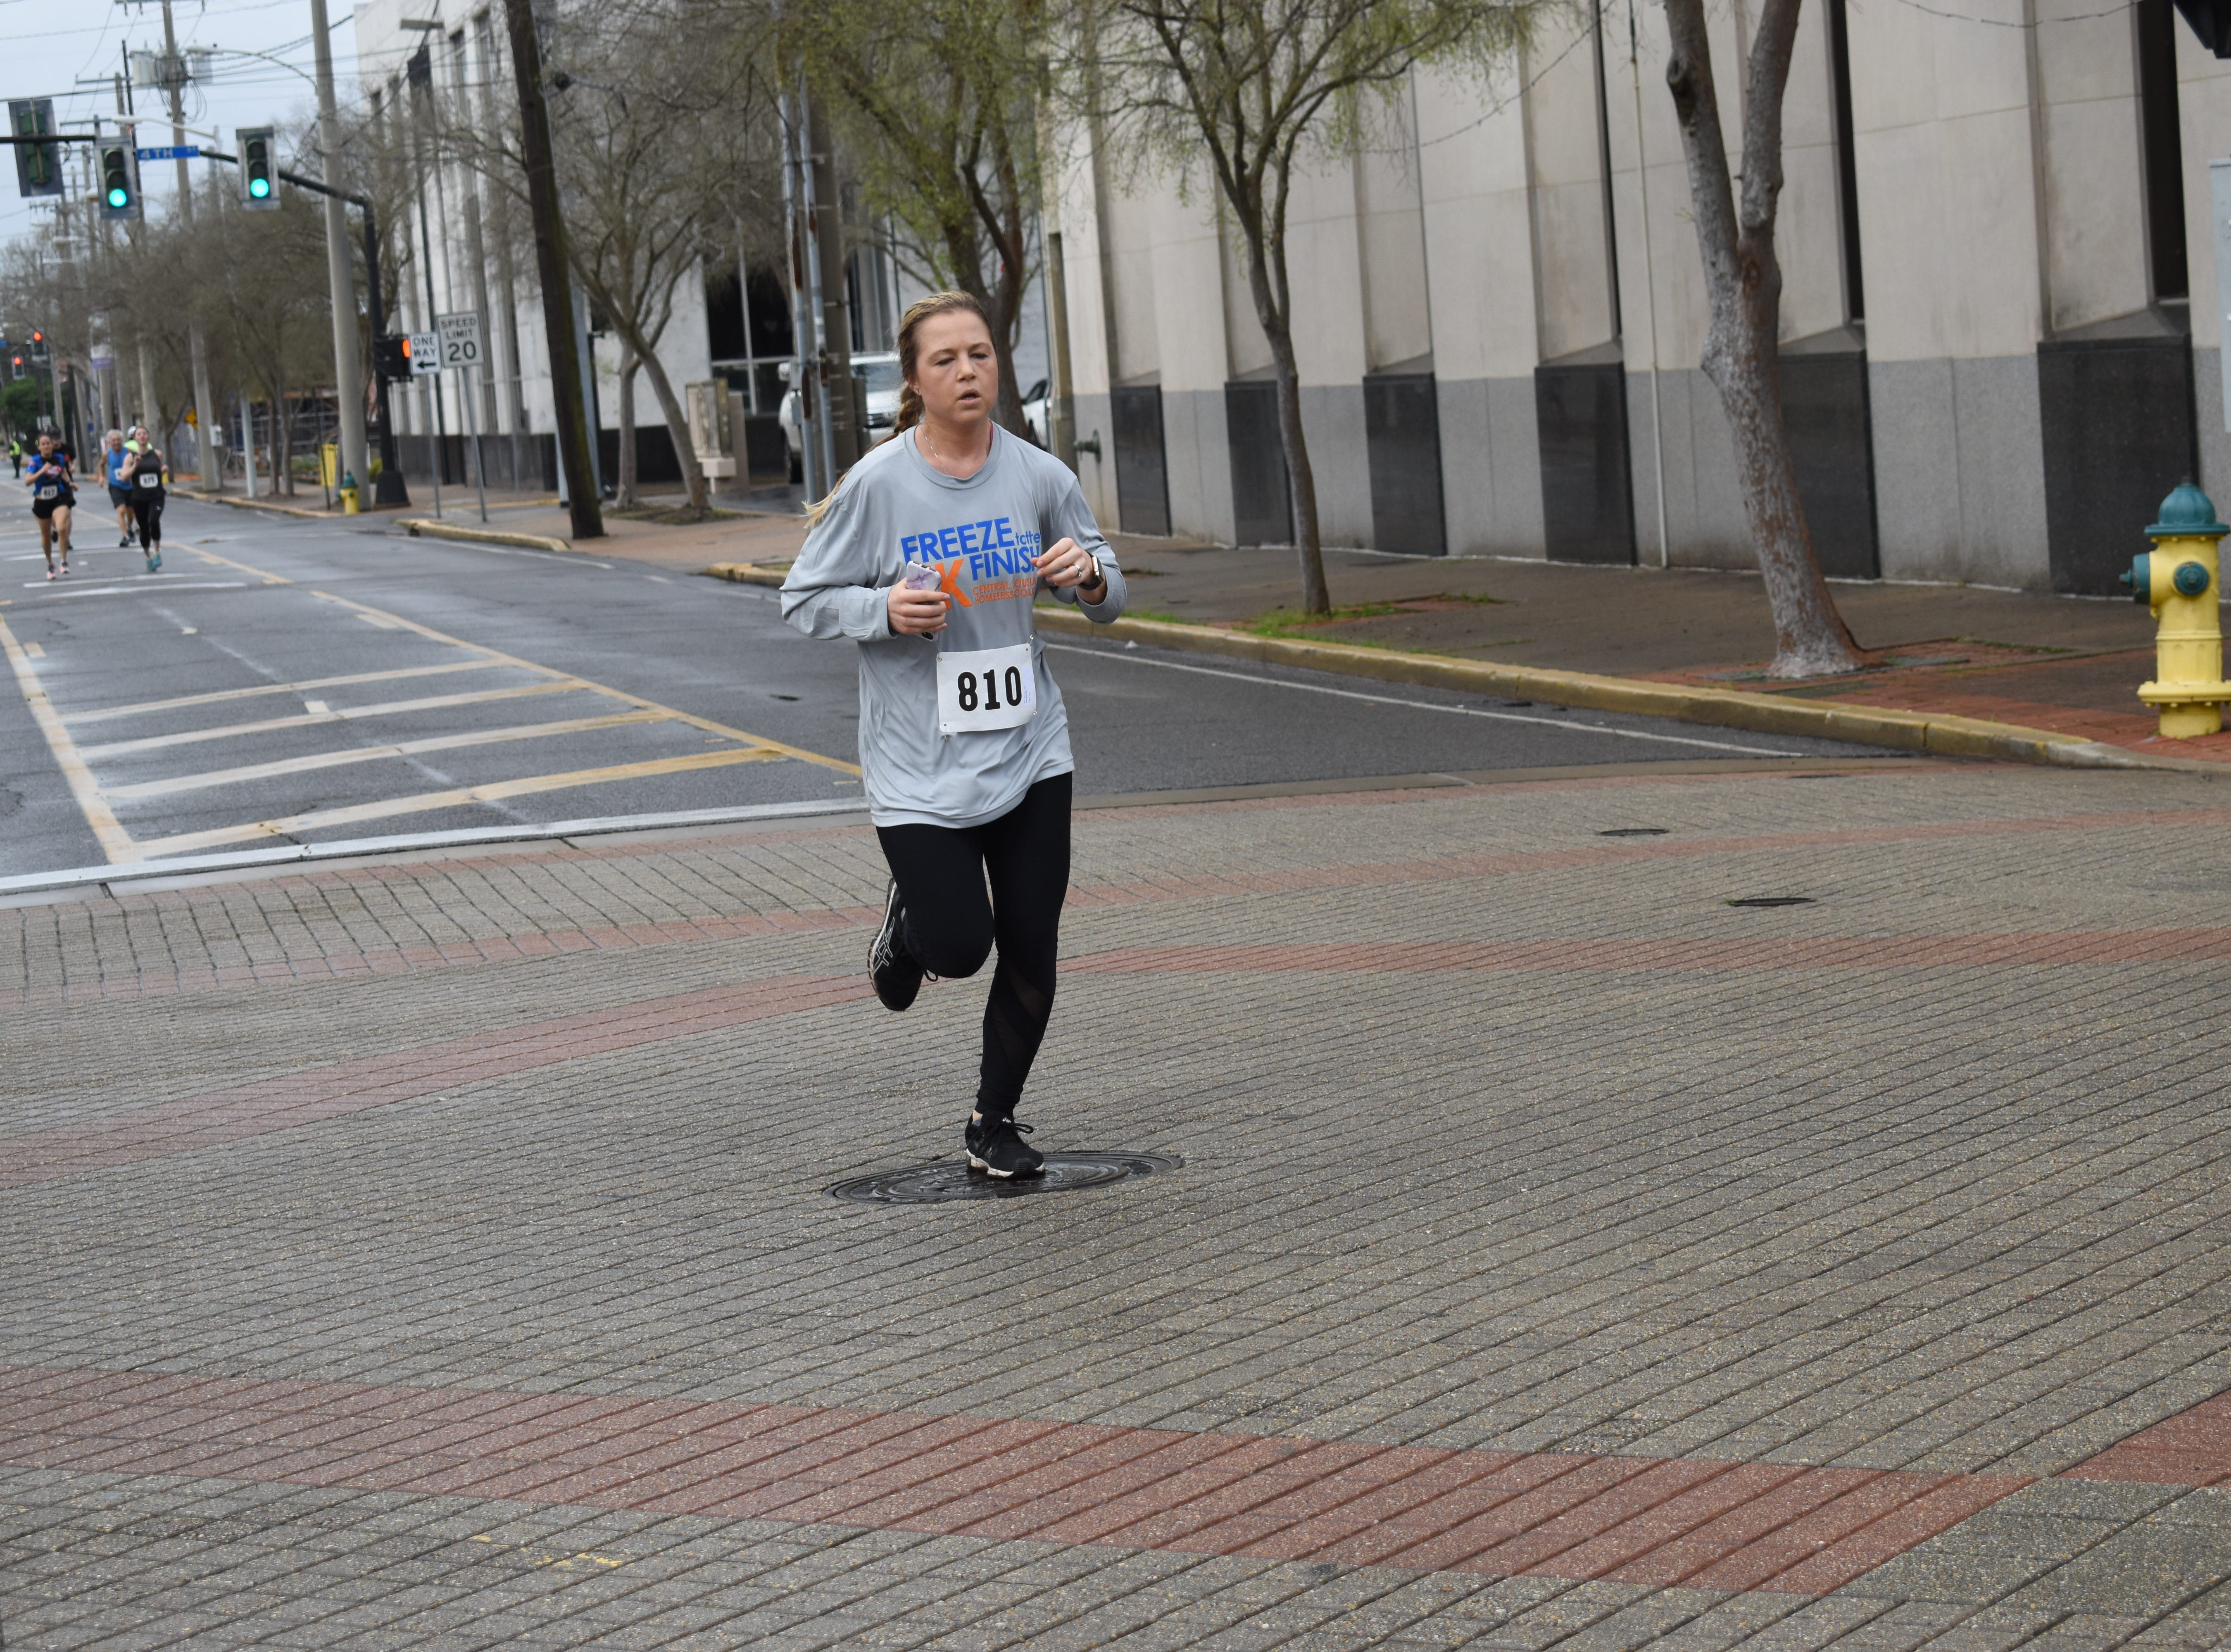 About 100 runners and walkers braved the weather Saturday, Feb. 23, 2019 to participate in the third annual Freeze to the Finish 5k Run/Walk in downtown Alexandria benefiting the Central Louisiana Homeless Coalition. The Freeze to the Finish 5k Run/Walk raises awareness about those people in the community who are unsheltered. The event helps to raise funds for the coalition to provide services to those who need them. Four weeks ago, the coalition along with volunteers combed the area looking for individuals in need to bring them supplies and information about community services available. An Everyday Heroes campaign was also encouraged for runners and walkers to raise funds by having a Everyday Hero fundraising page. Everyday Heroes could wear a superhero costume while running or walking.